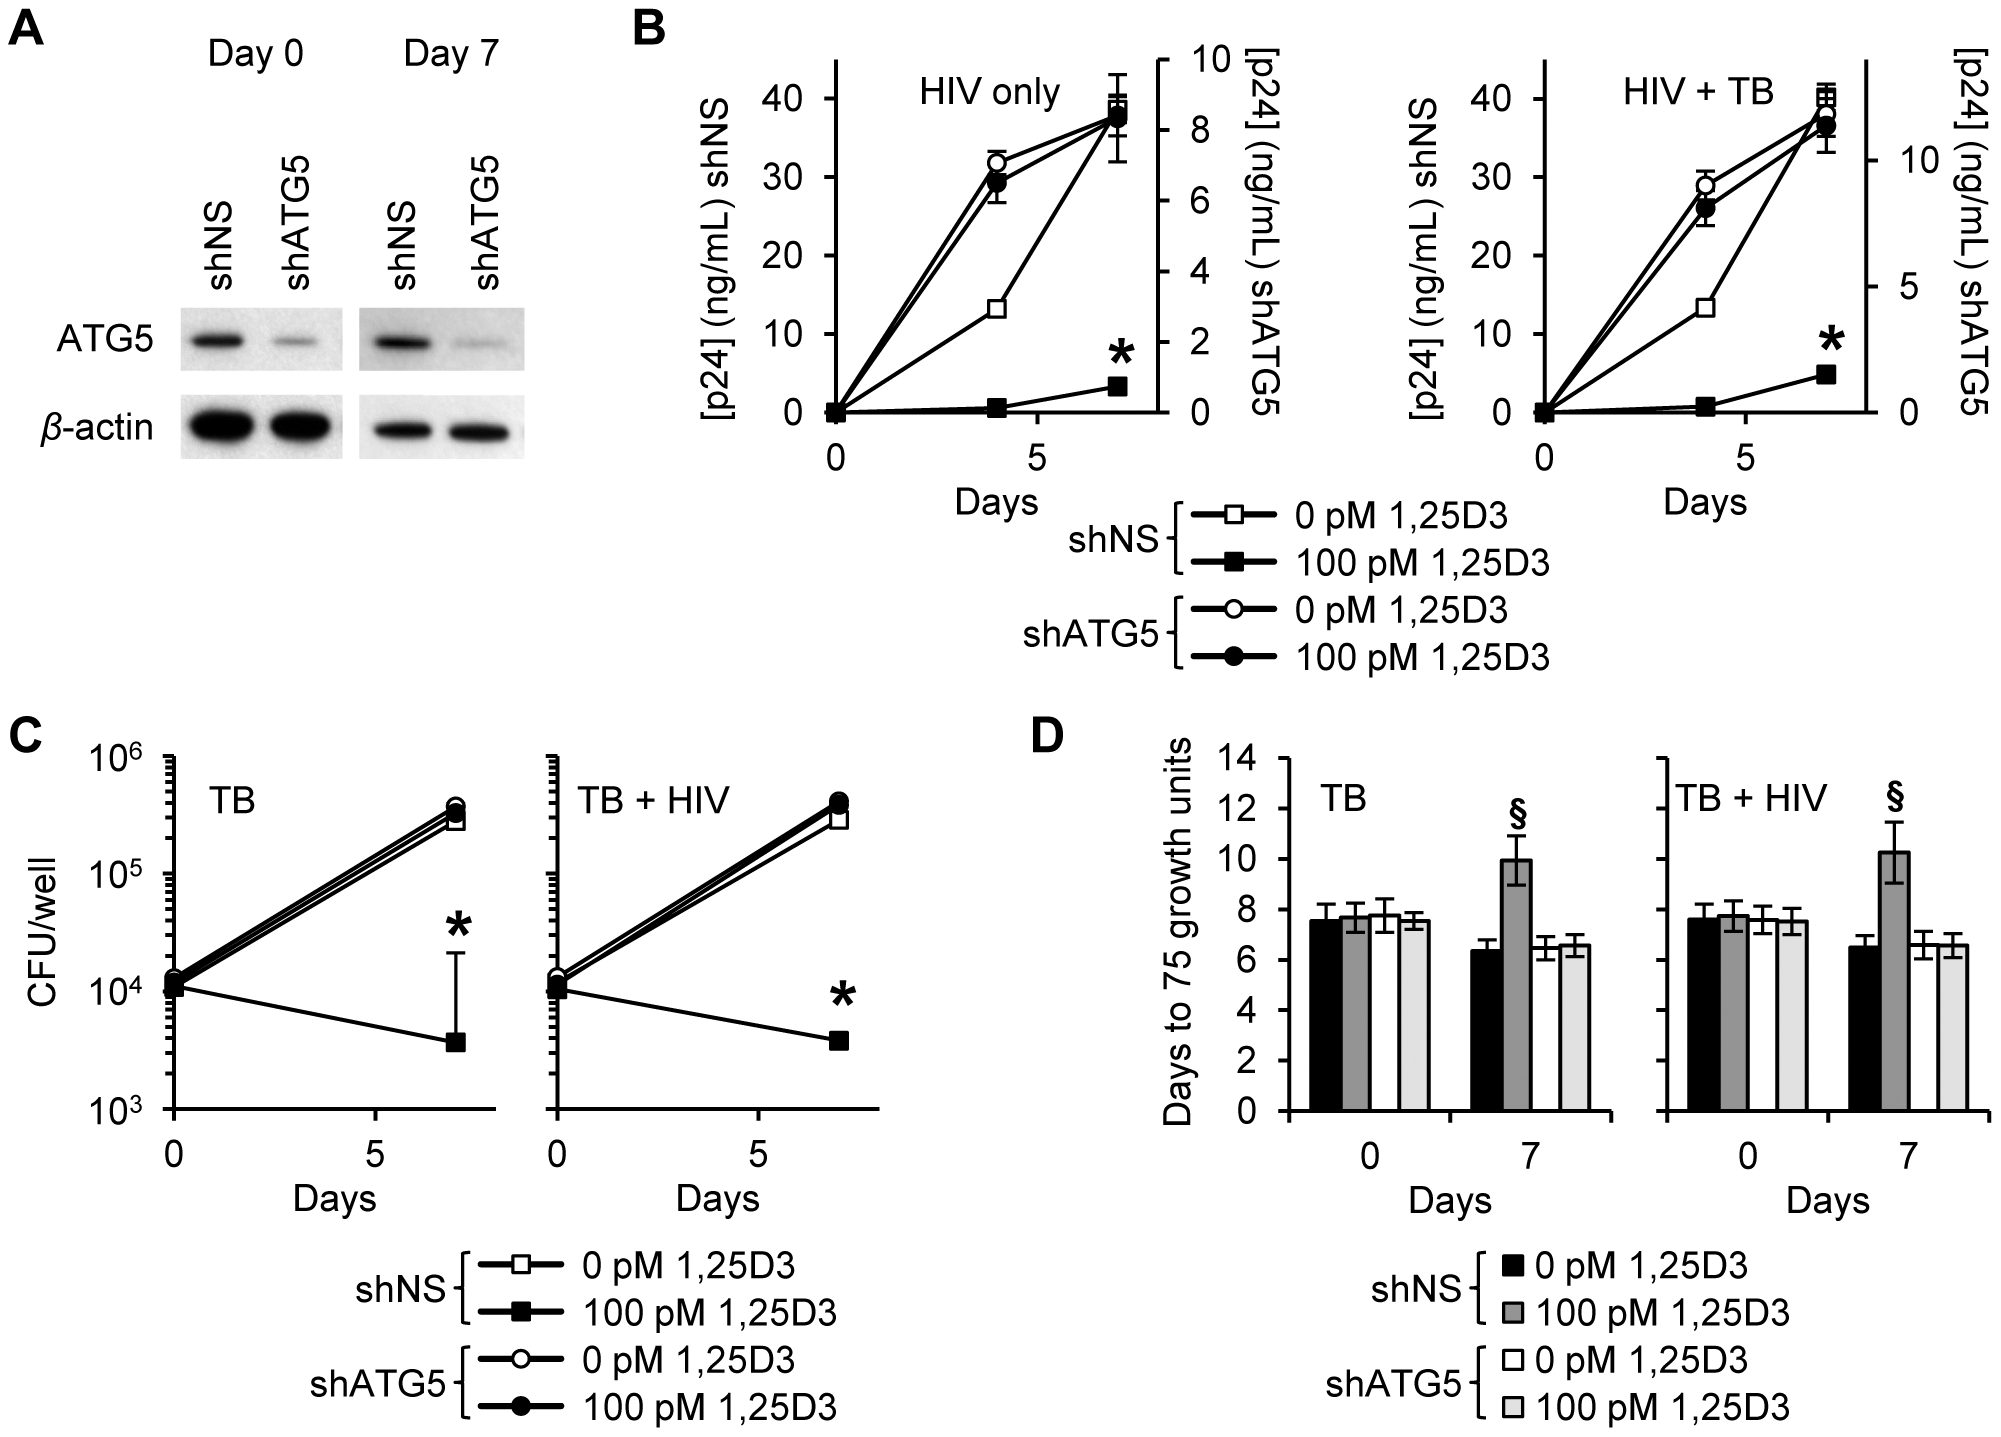 1,25D3 inhibition of HIV and <i>M. tuberculosis</i> is ATG5 dependent.